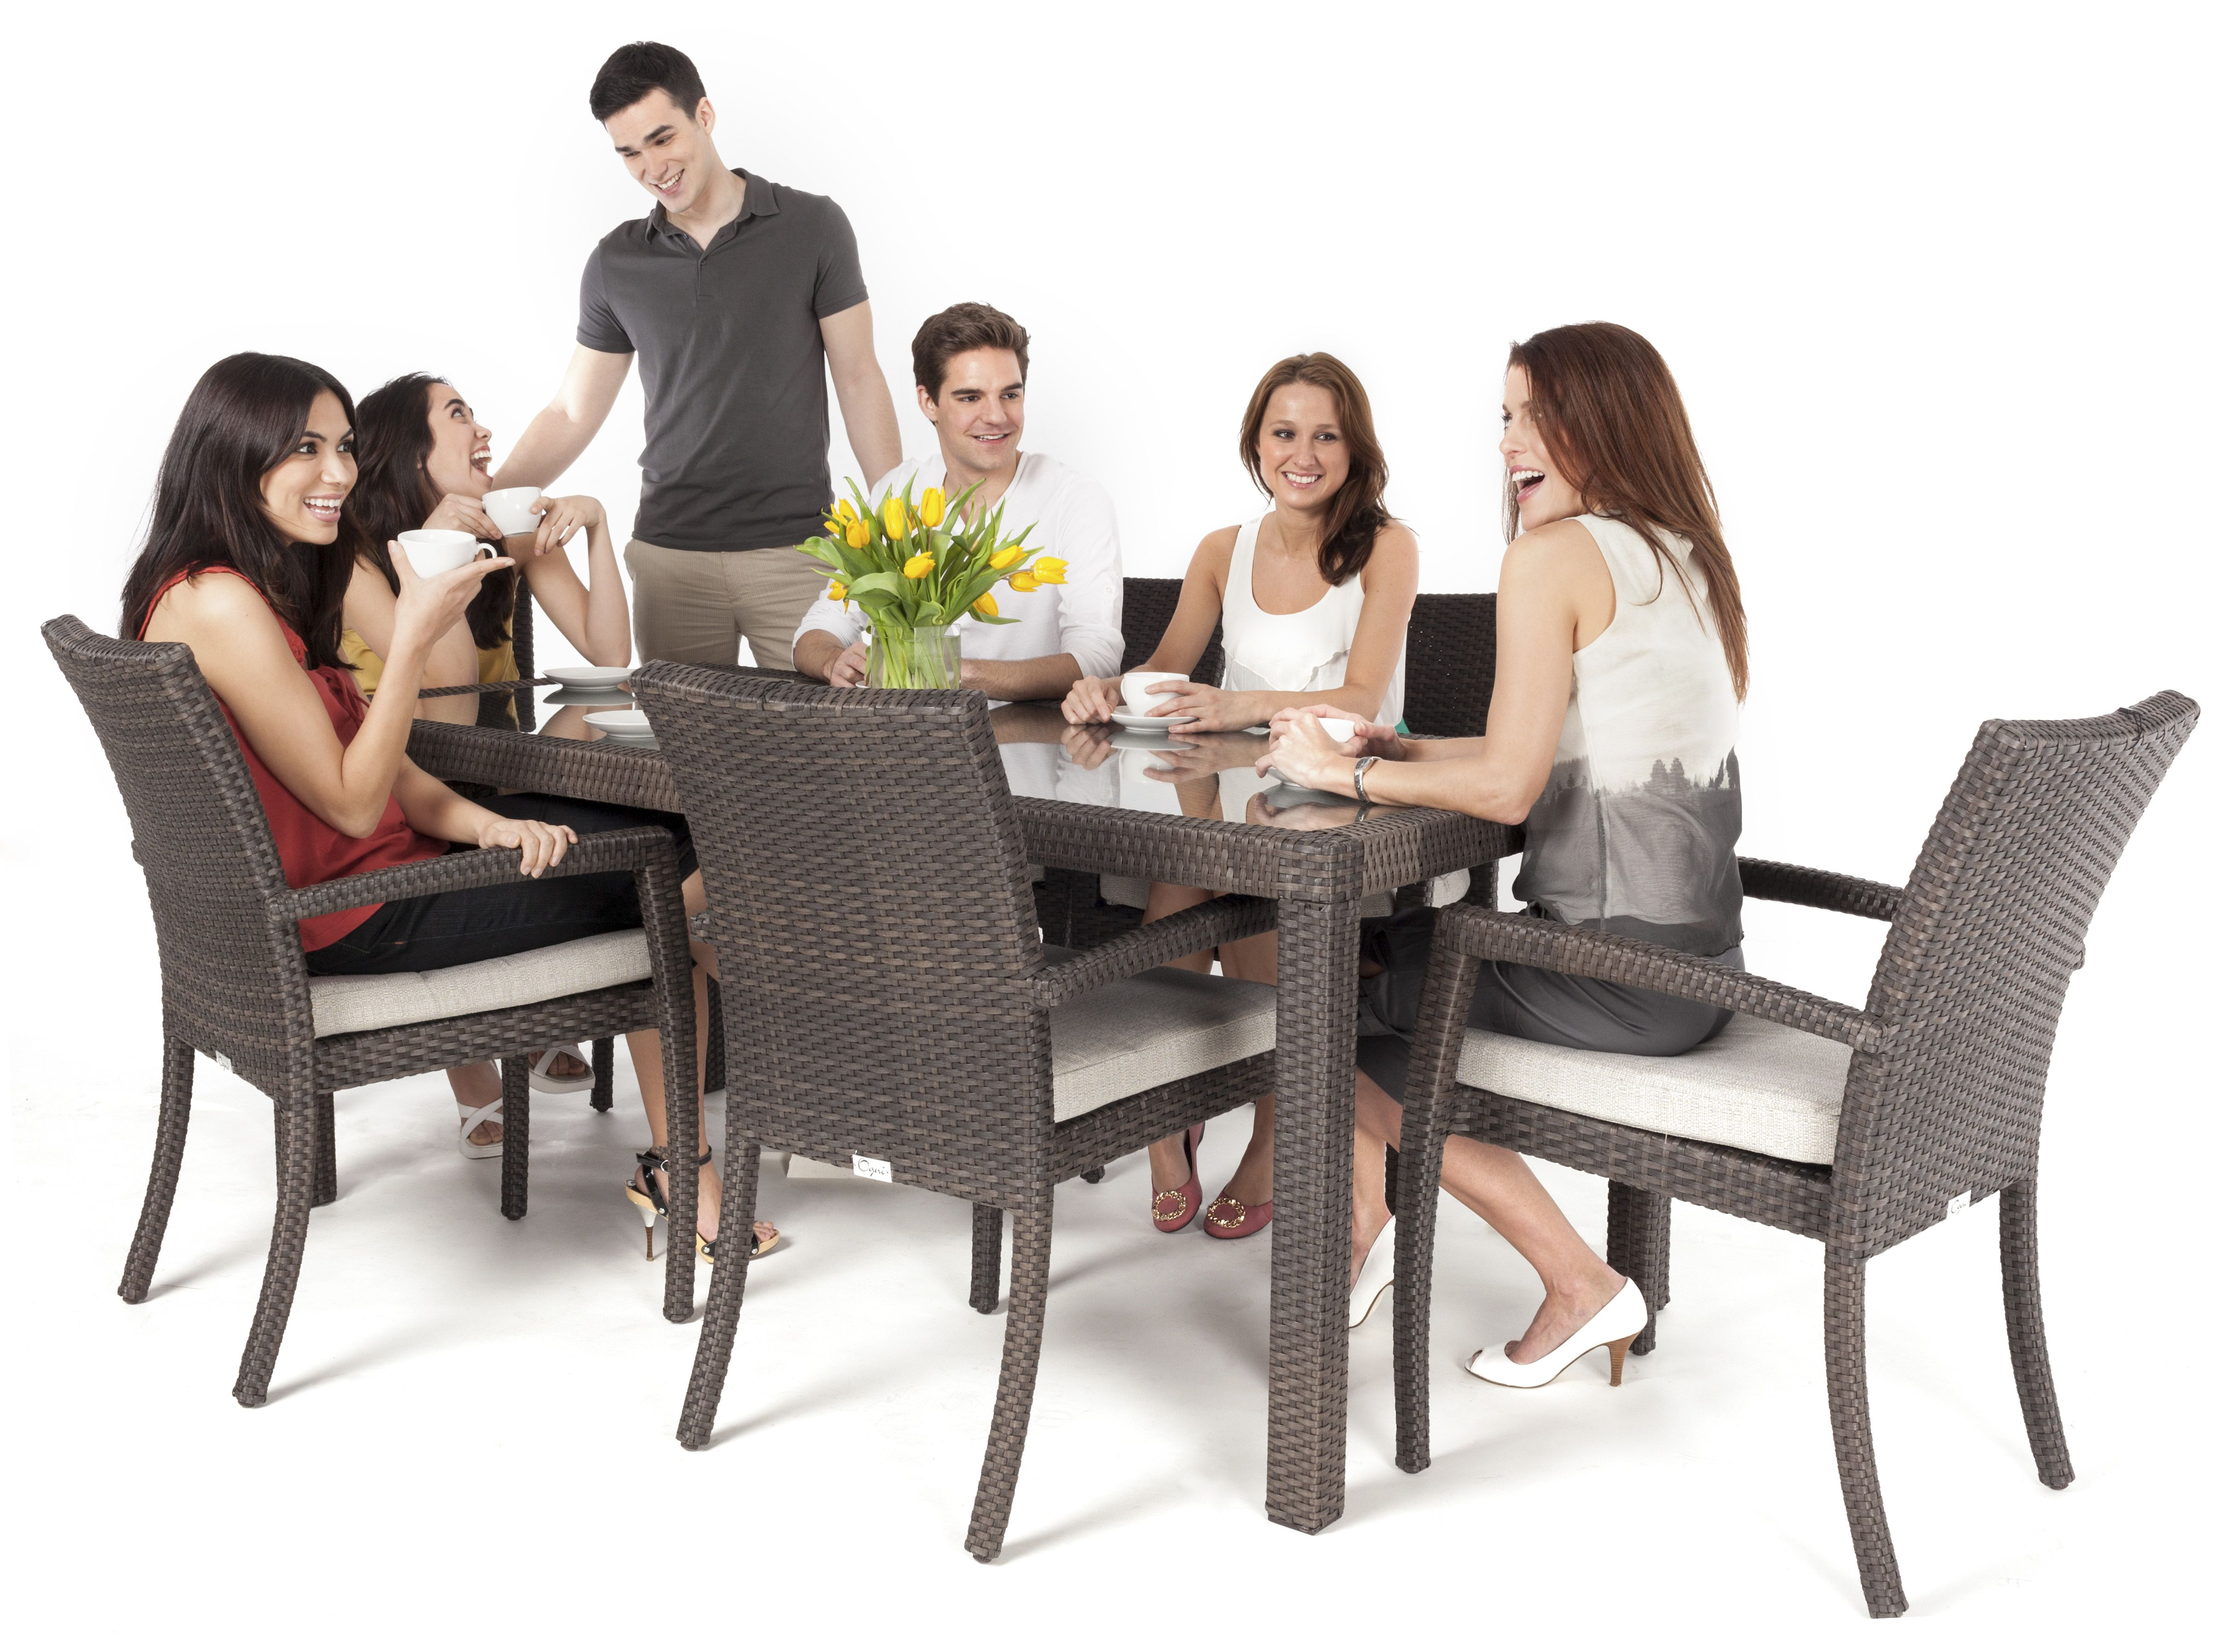 Modern Wicker Style Glass Topped Dining Table Seats 6 People In